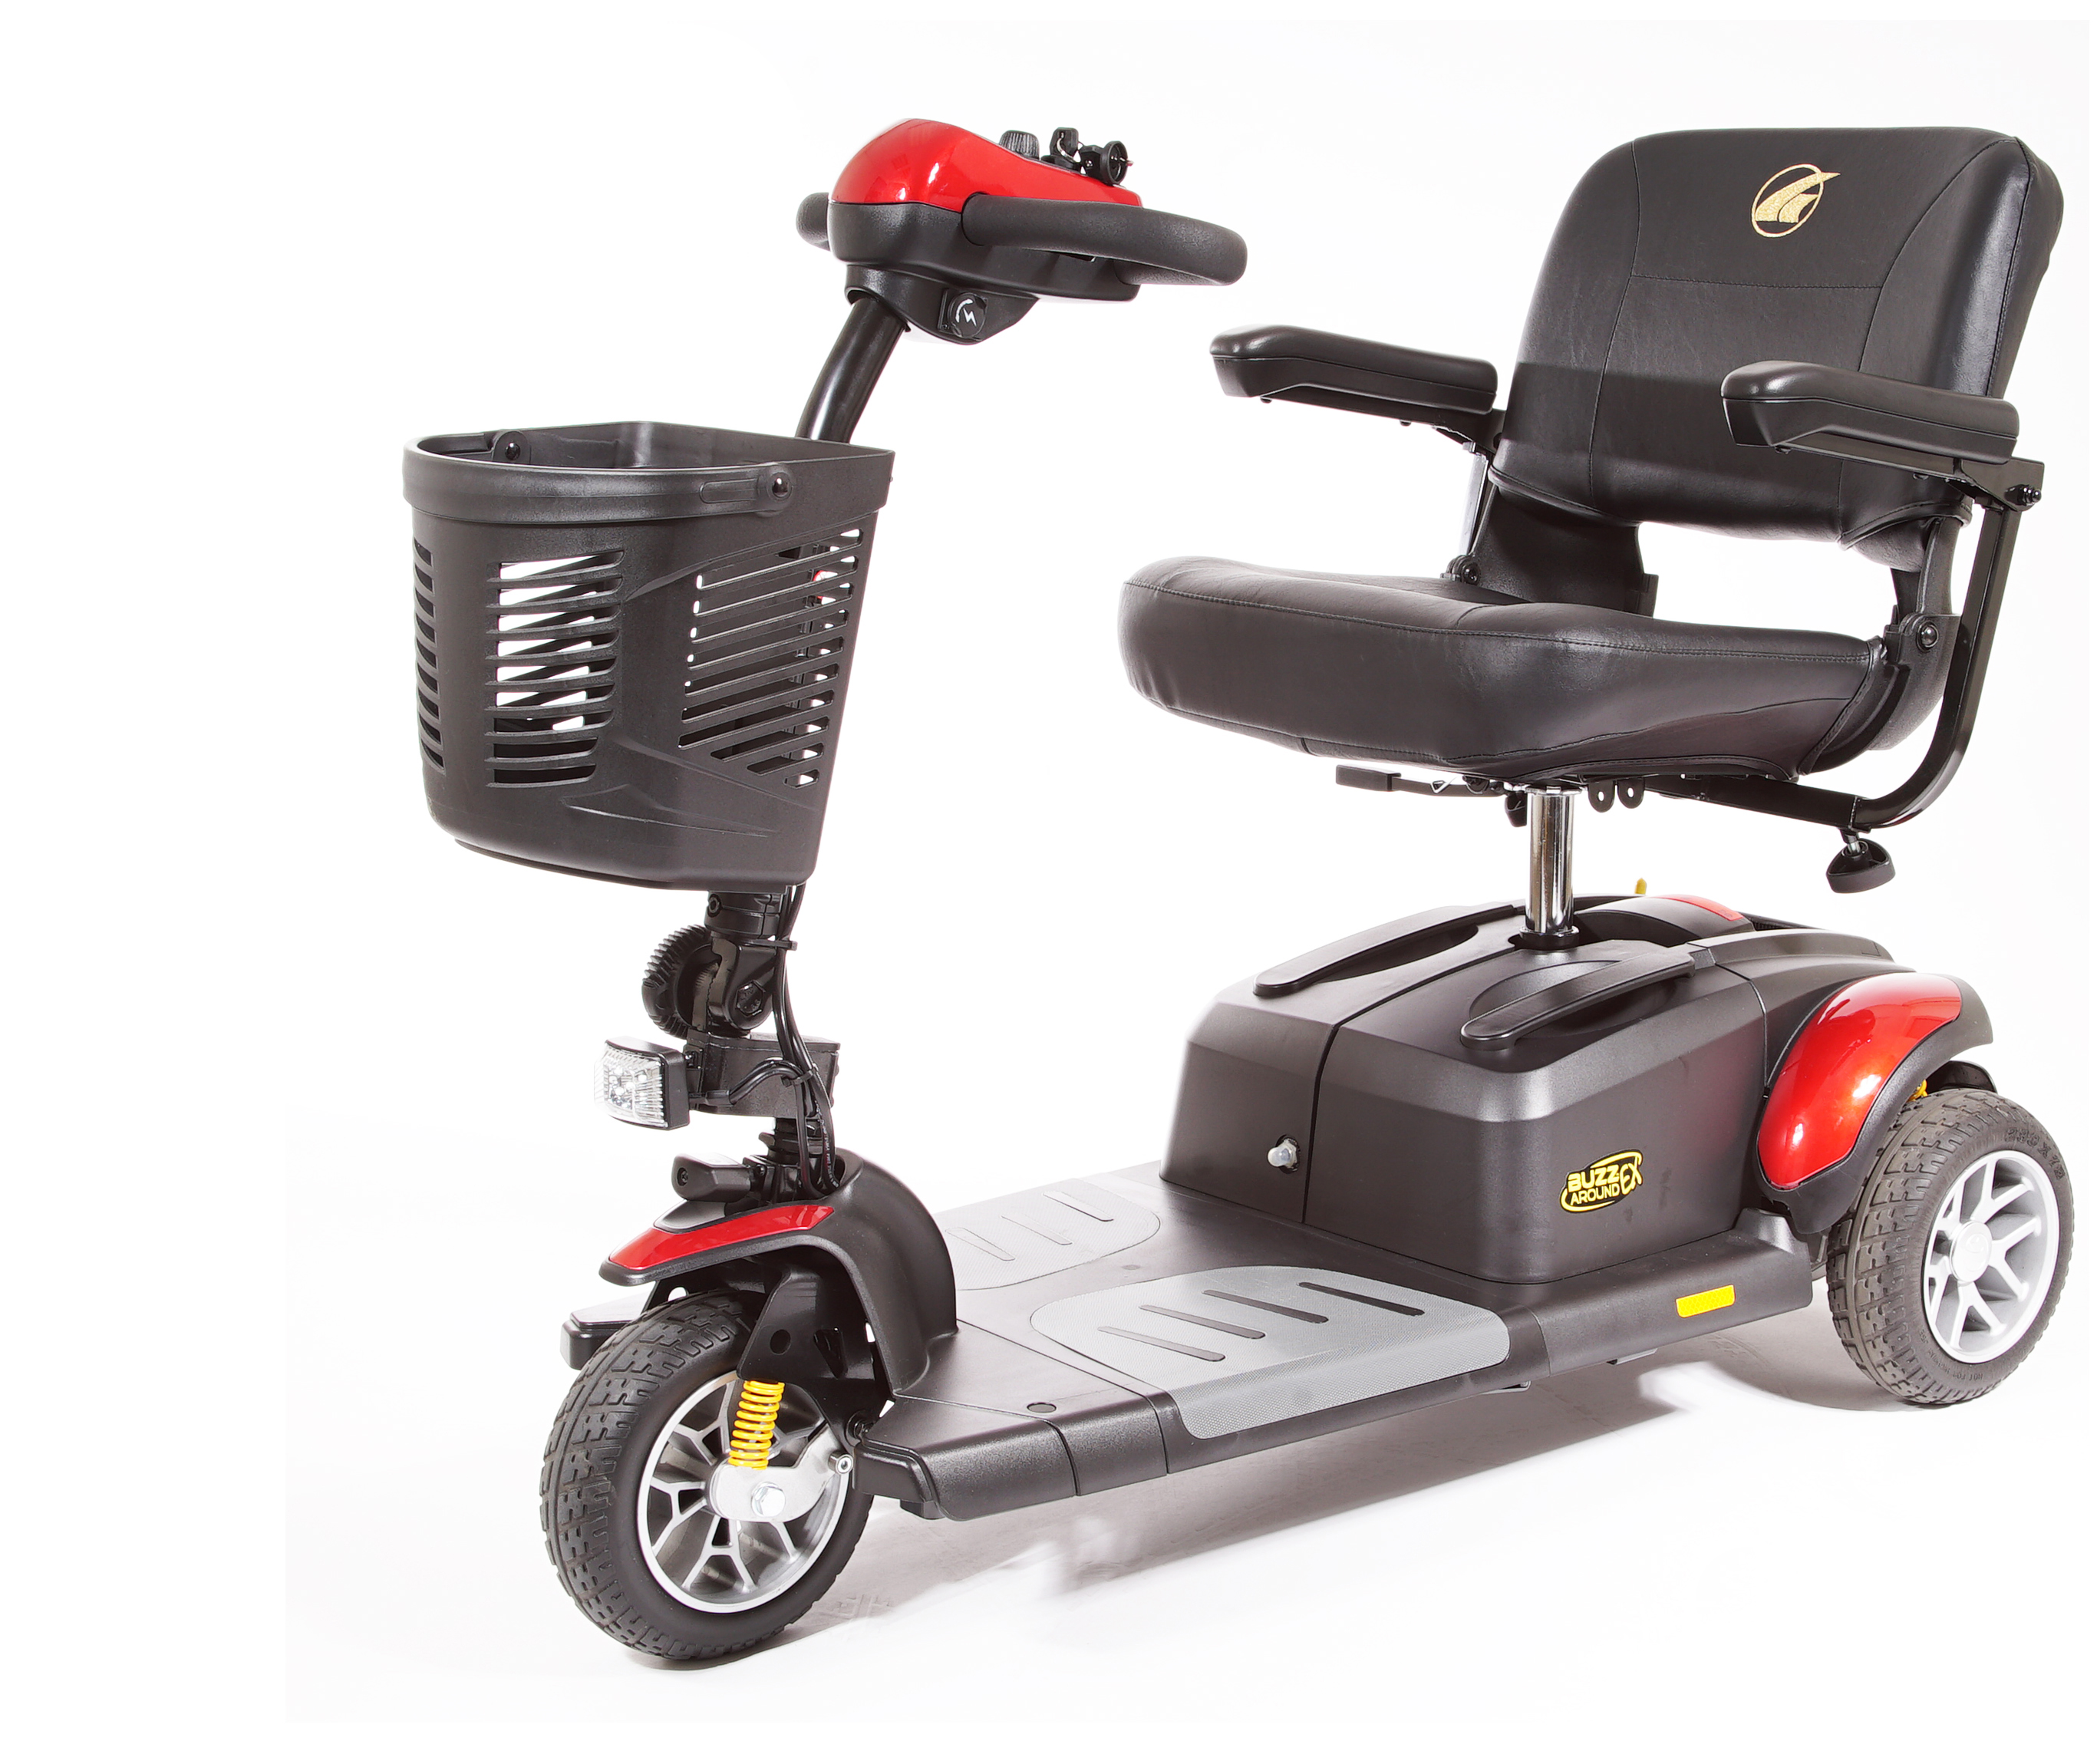 Golden Parts - All Mobility Brands - Mobility Scooter and Power ...